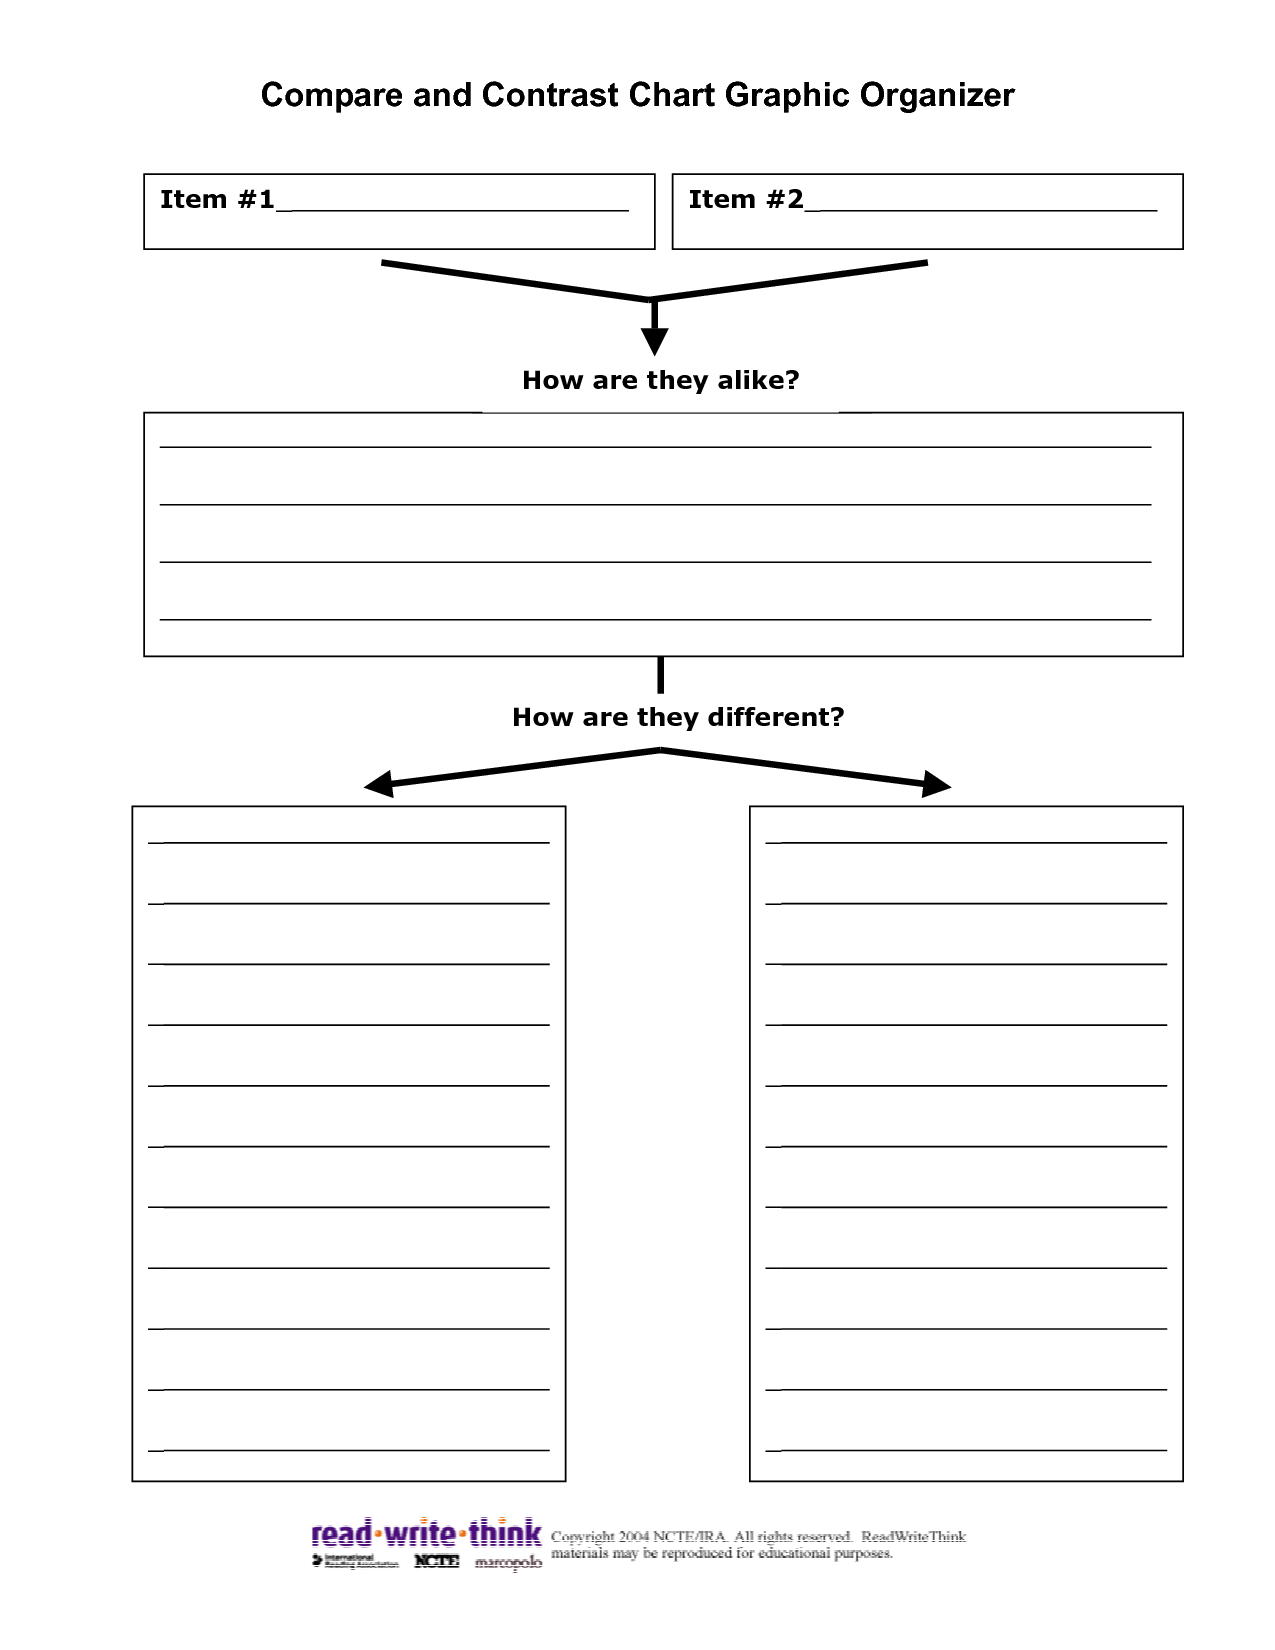 graphic organizer for a comparecontrast essay - Compare And Contrast Essay Outline Format